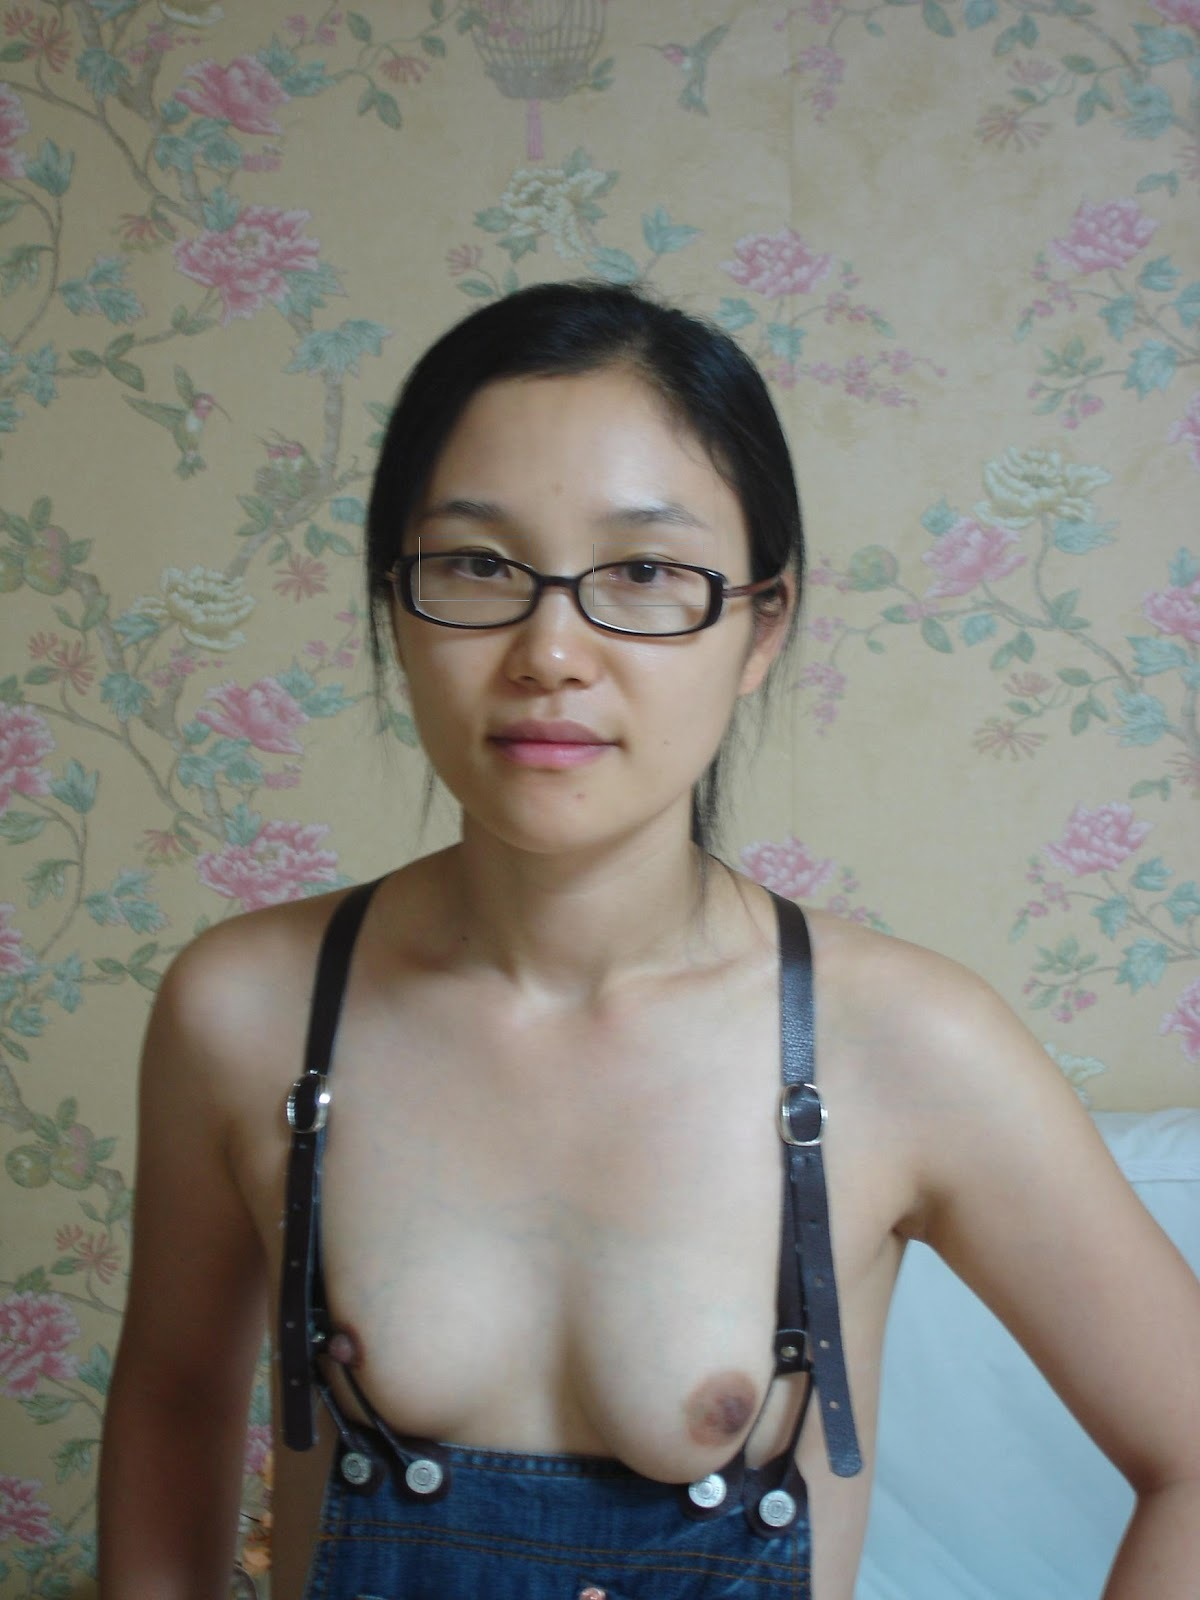 hot girls in the middle of nowhere #asian #geek #glasses #lickingnipple